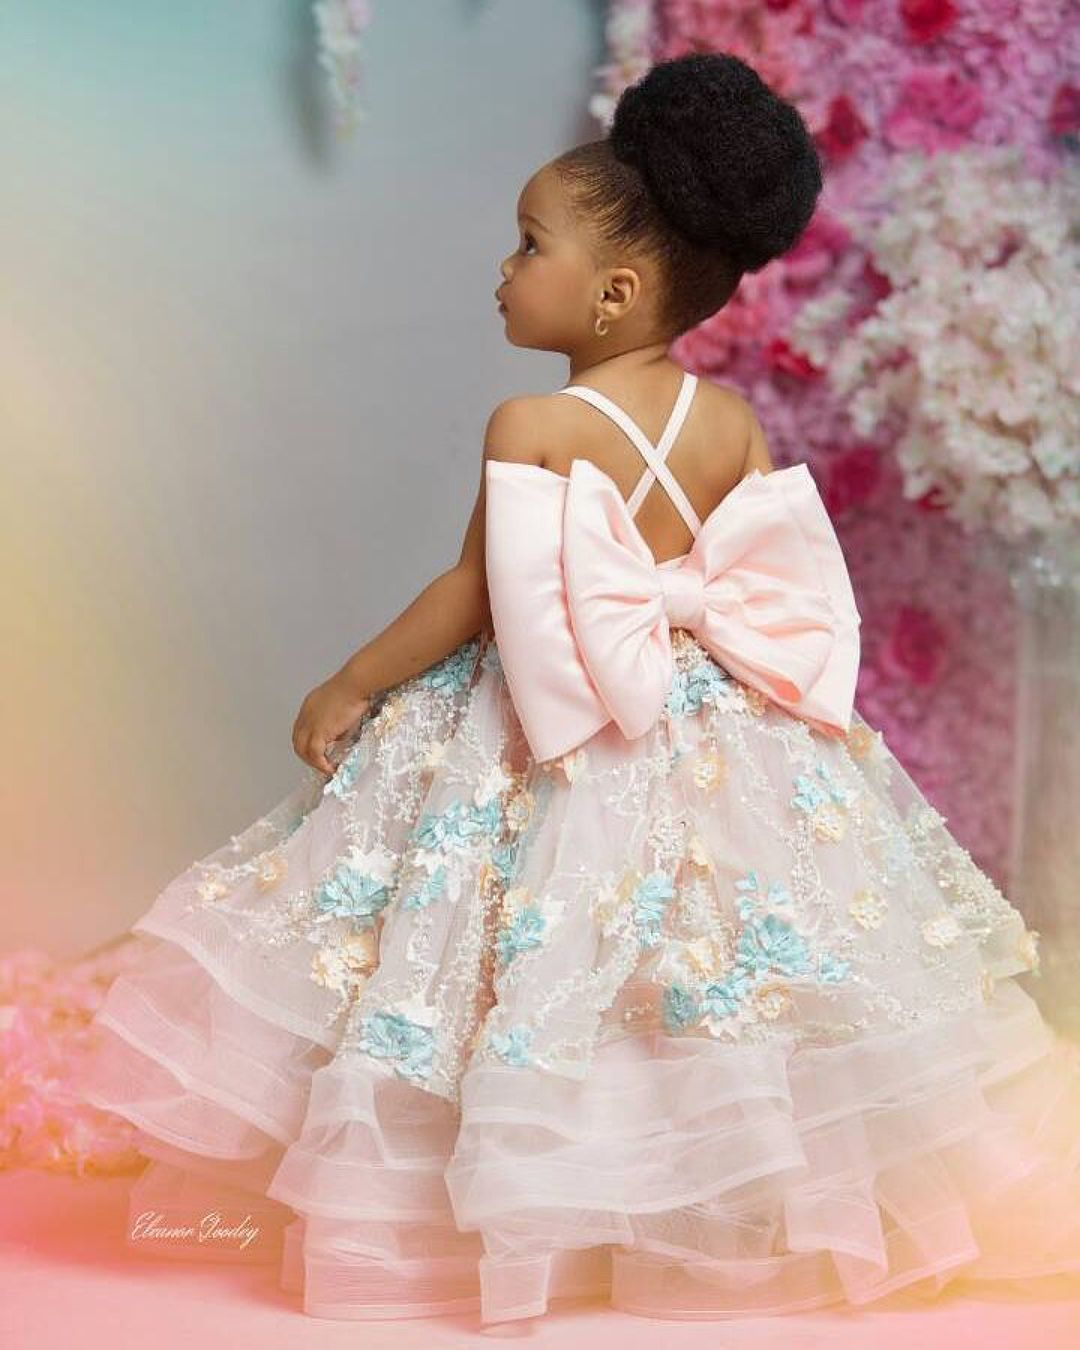 364 8k Followers 458 Following 5 619 Posts See Instagram Photos And Videos From Weddings Onpoin Flower Girl Gown American Girl Princess Flower Girl Dresses